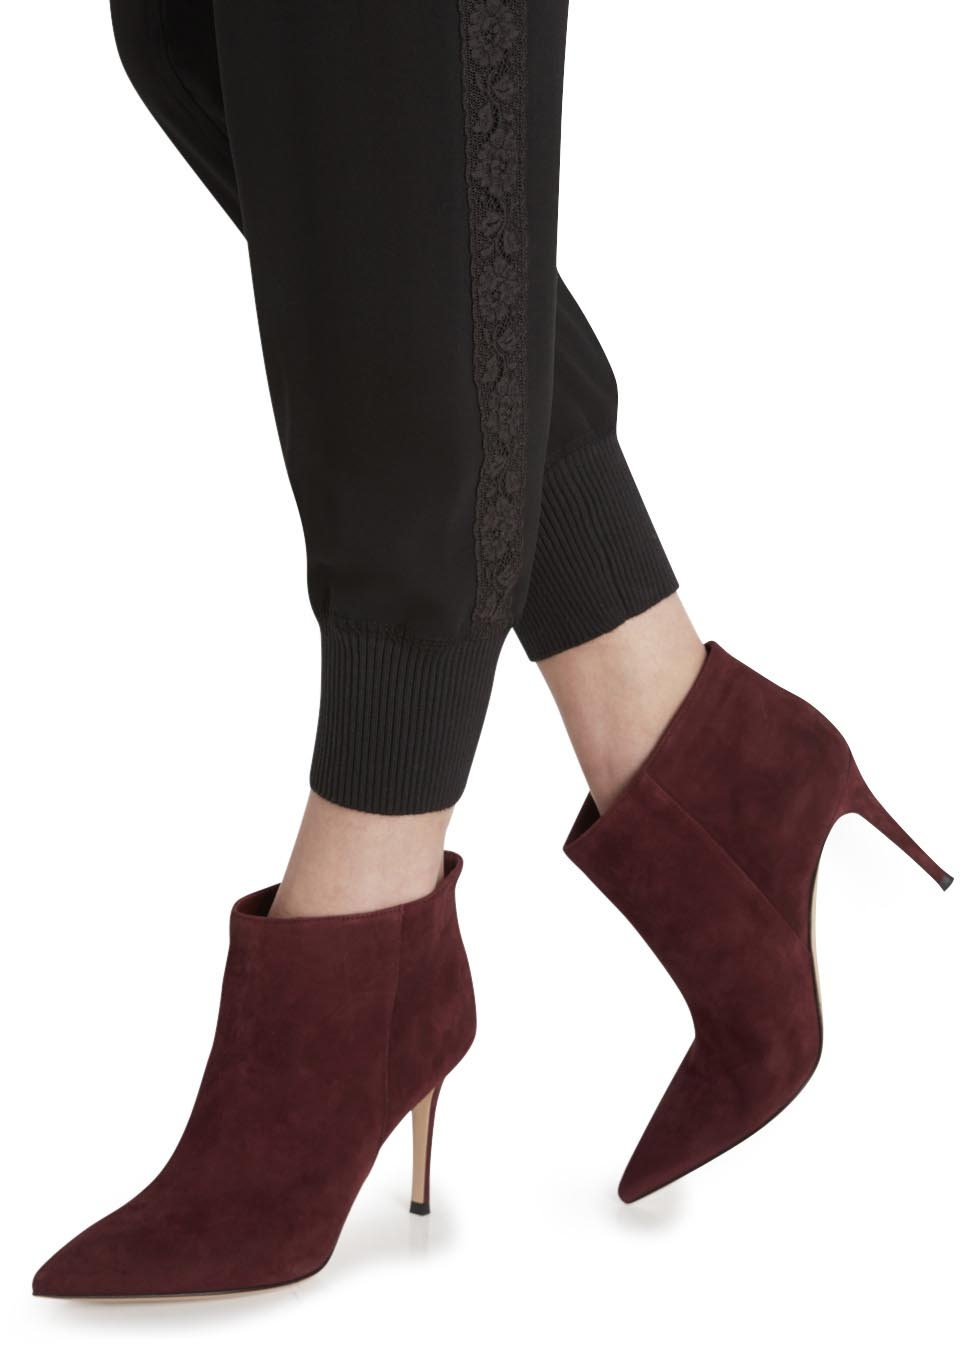 Gianvito Rossi Burgundy Suede Ankle Boots in Red